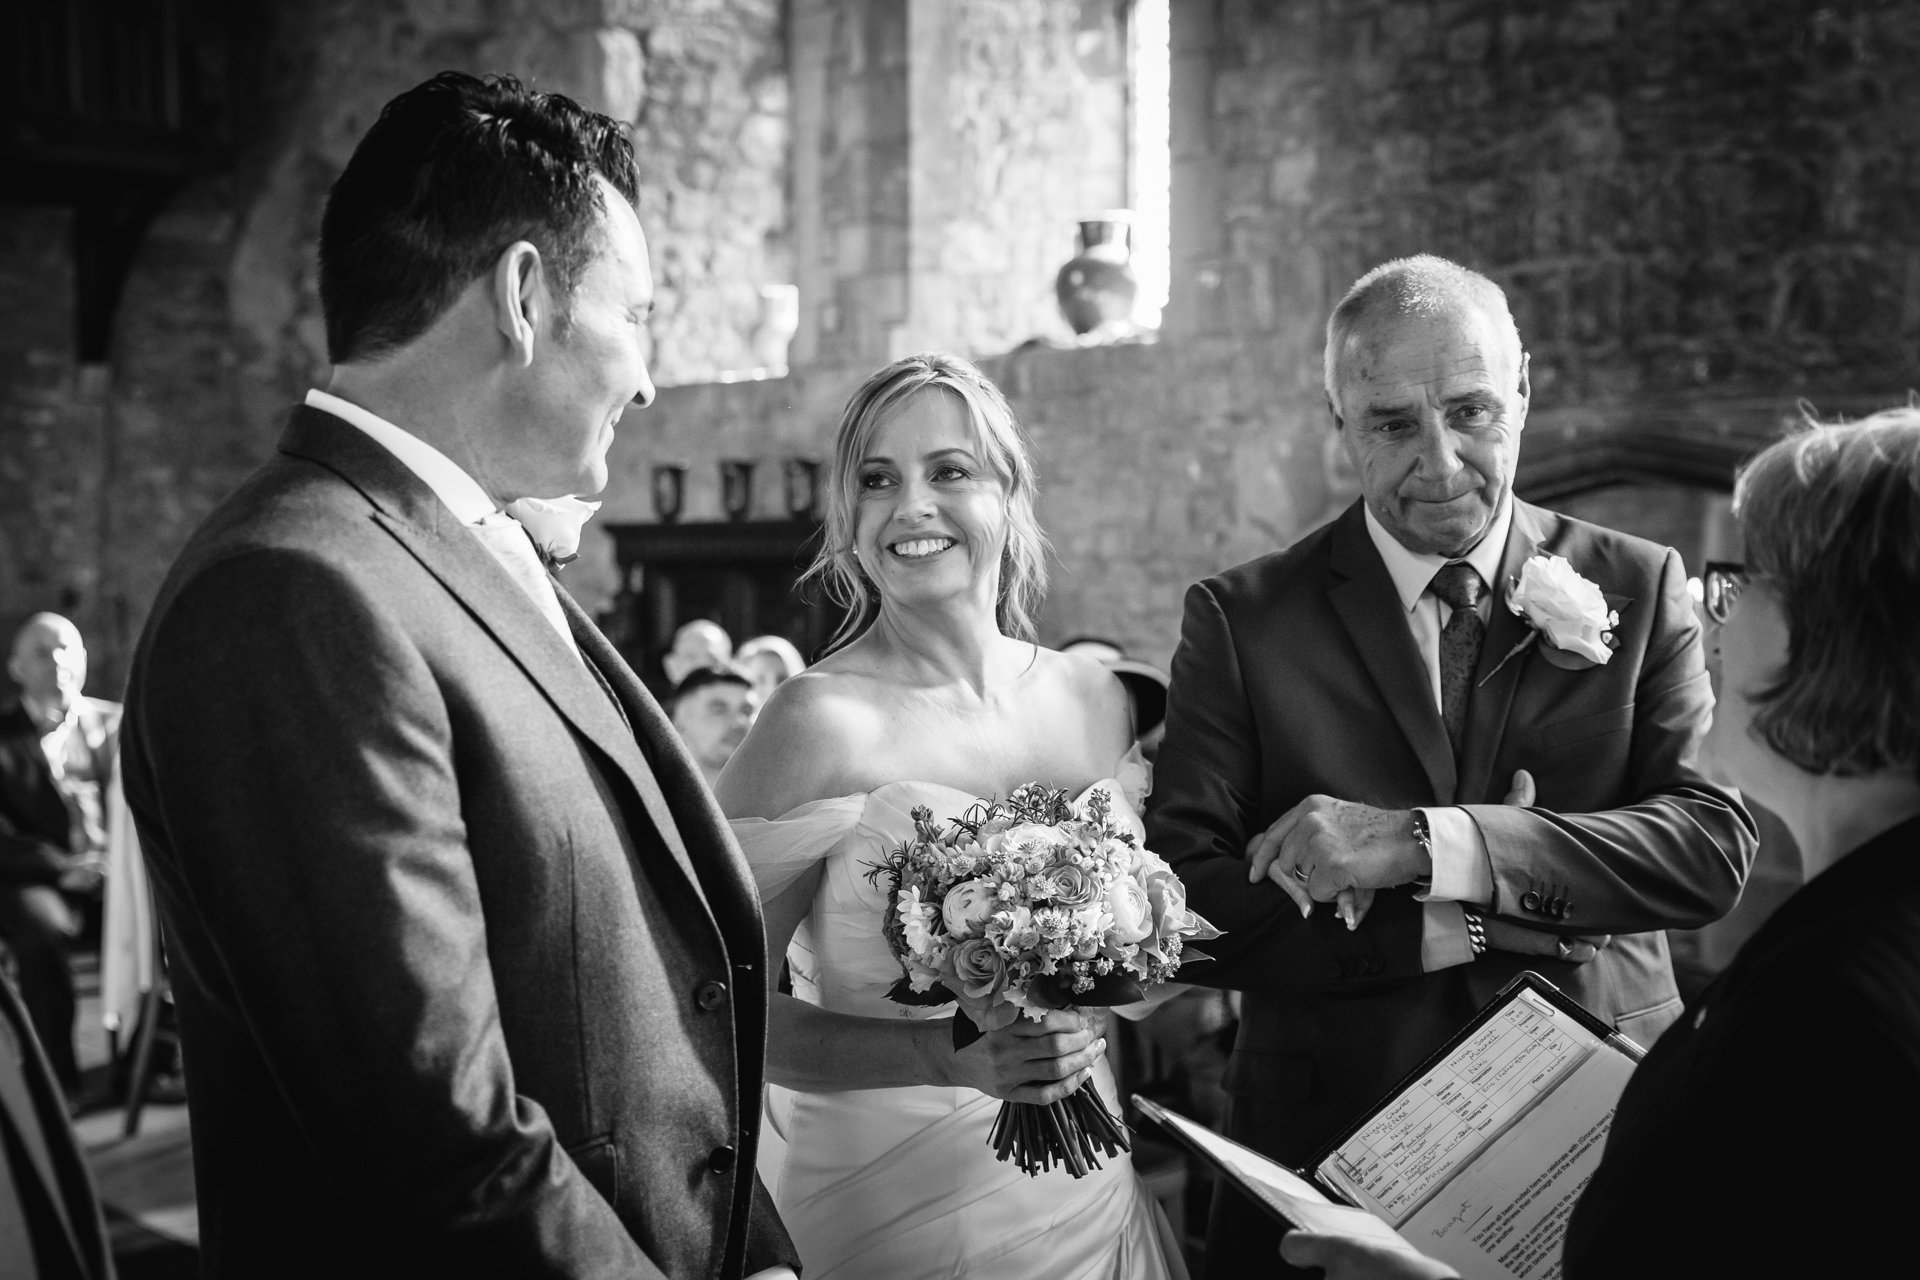 Bride looking lovingly at her Groom in Allington Castle Wedding ceremony